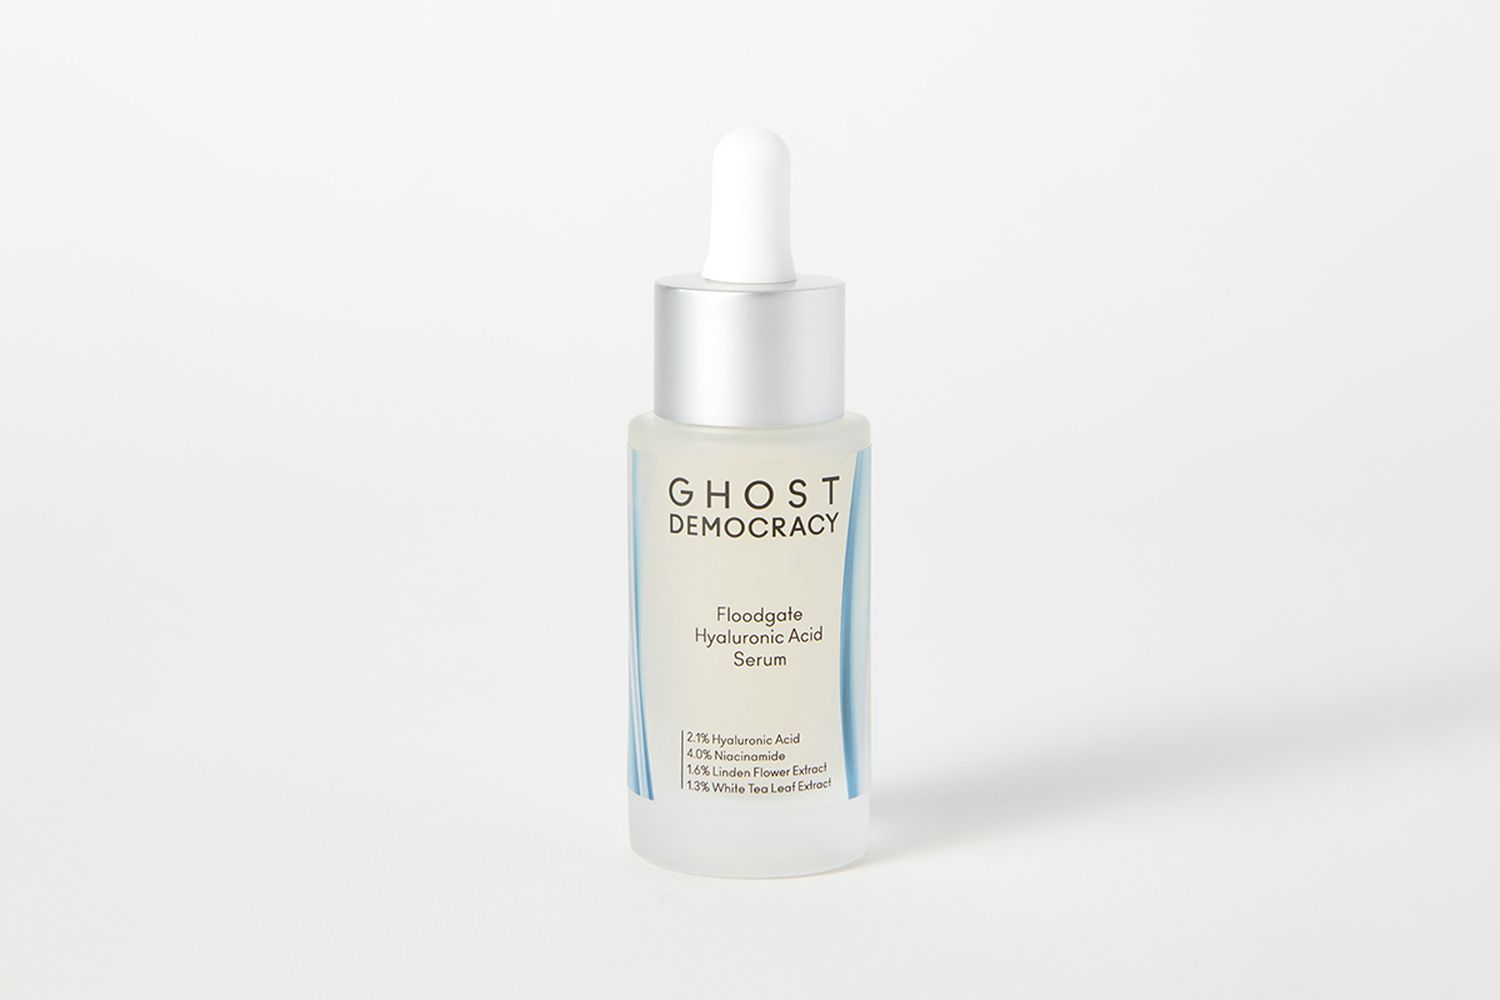 Floodgate Hyaluronic Acid Serum